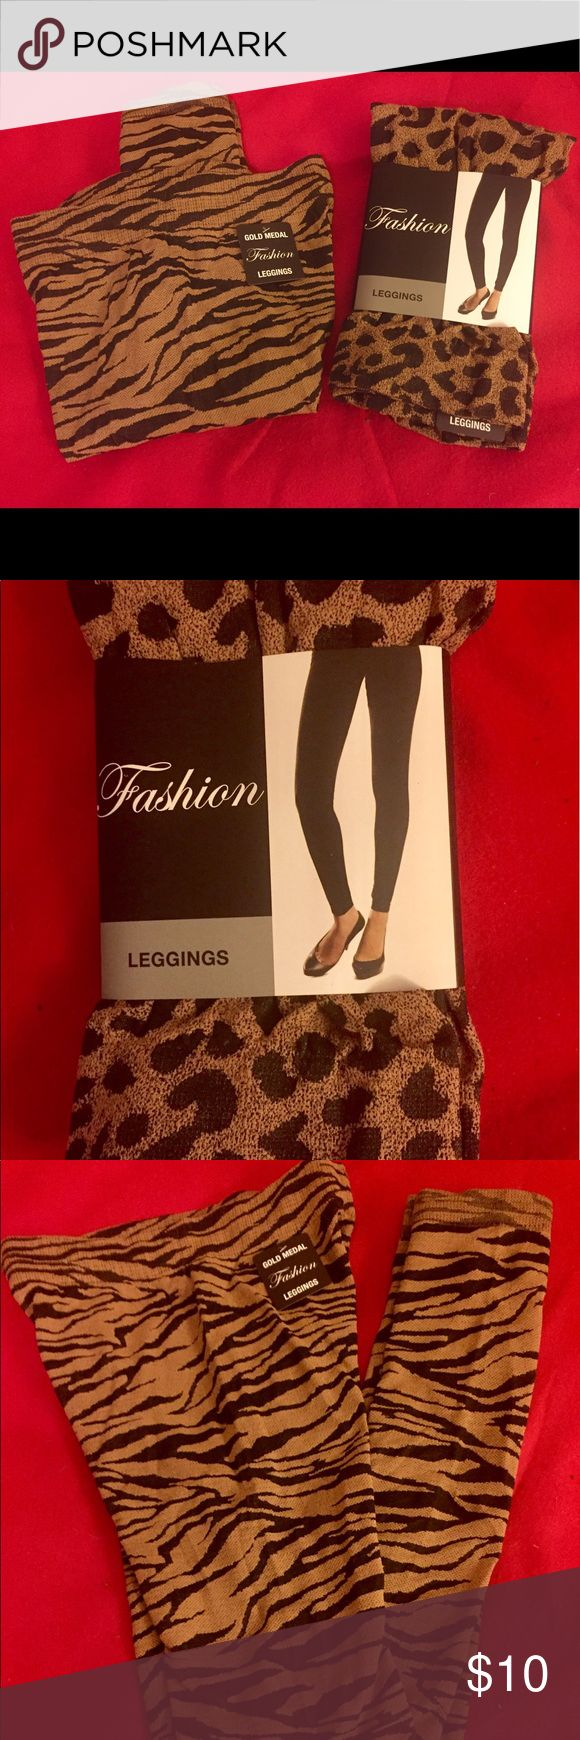 FASHION TIGER/CHEETAH/LEOPARD PRINT LEGGINGS Sizes S - M- L/XL available. Sold separately or bundle for discount.  Please specify size and style for availability before purchasing. Mix and match.  95% Polyester / 4% Spandex. Gold Medal Pants Leggings